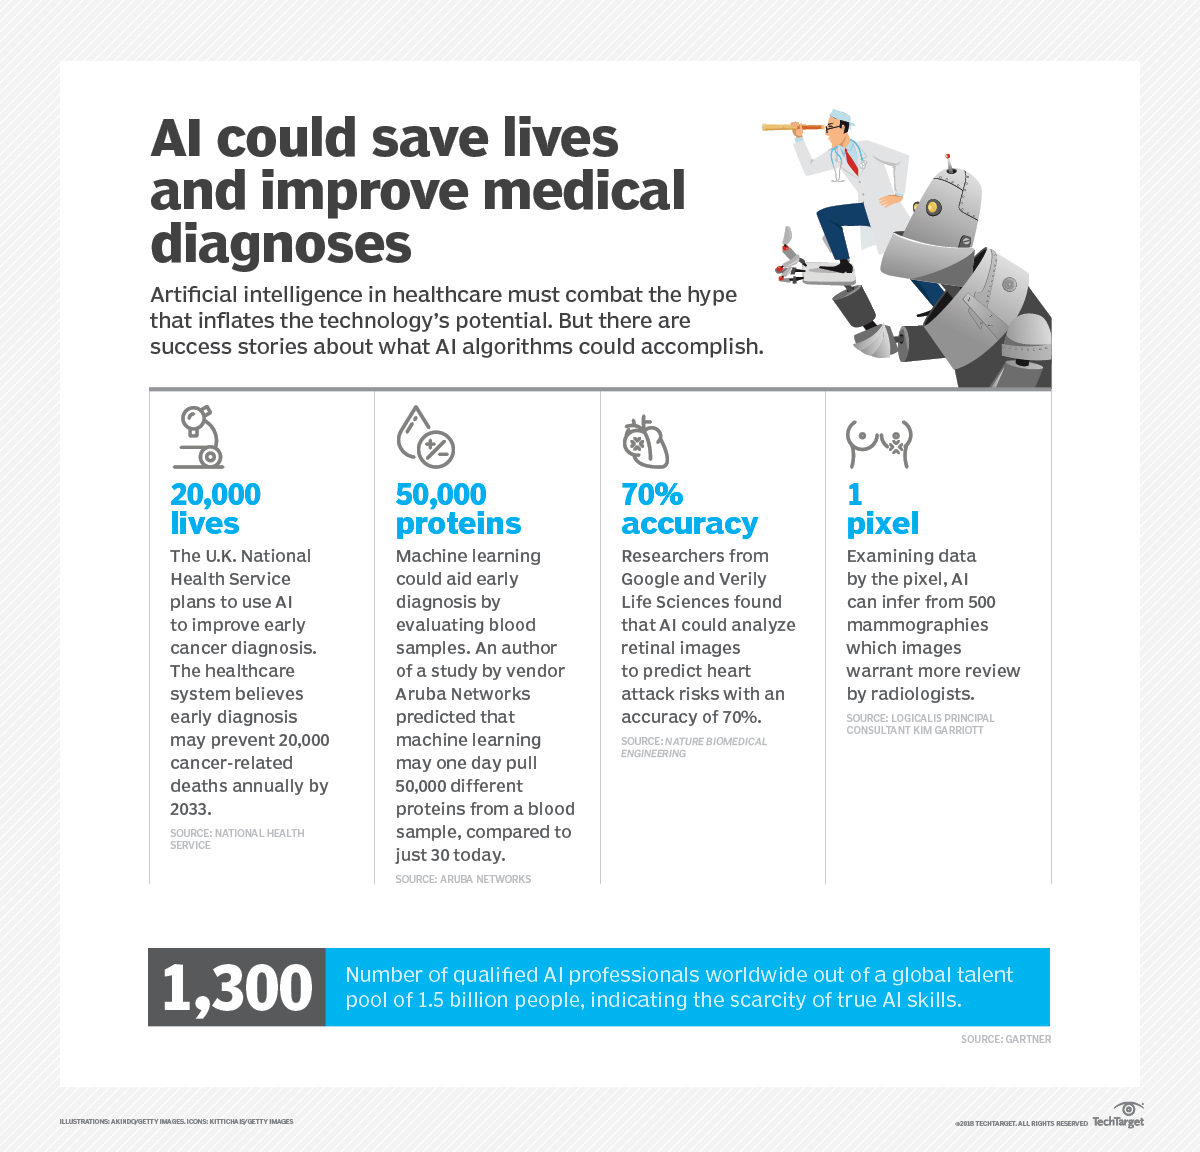 The present and future use of AI in healthcare